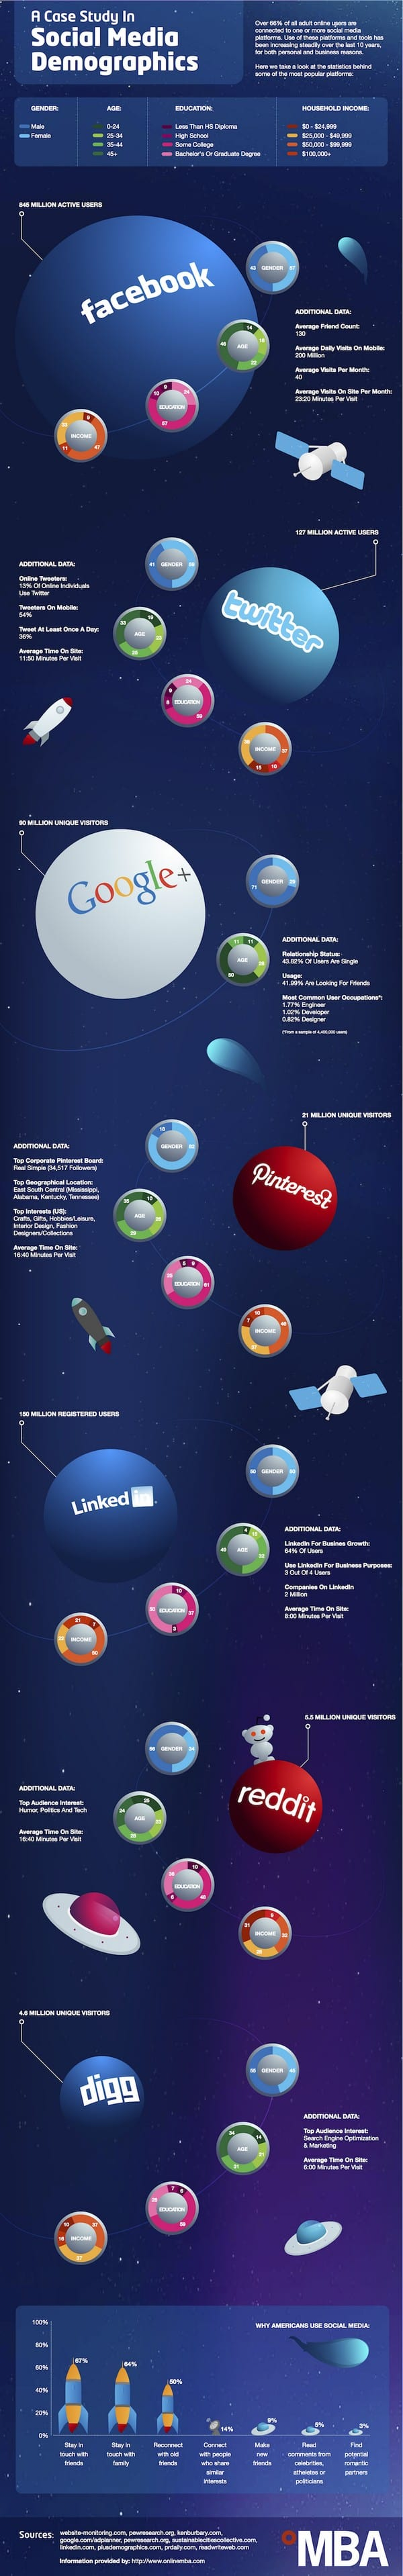 A Case Study in Social Media Demographics Infographic